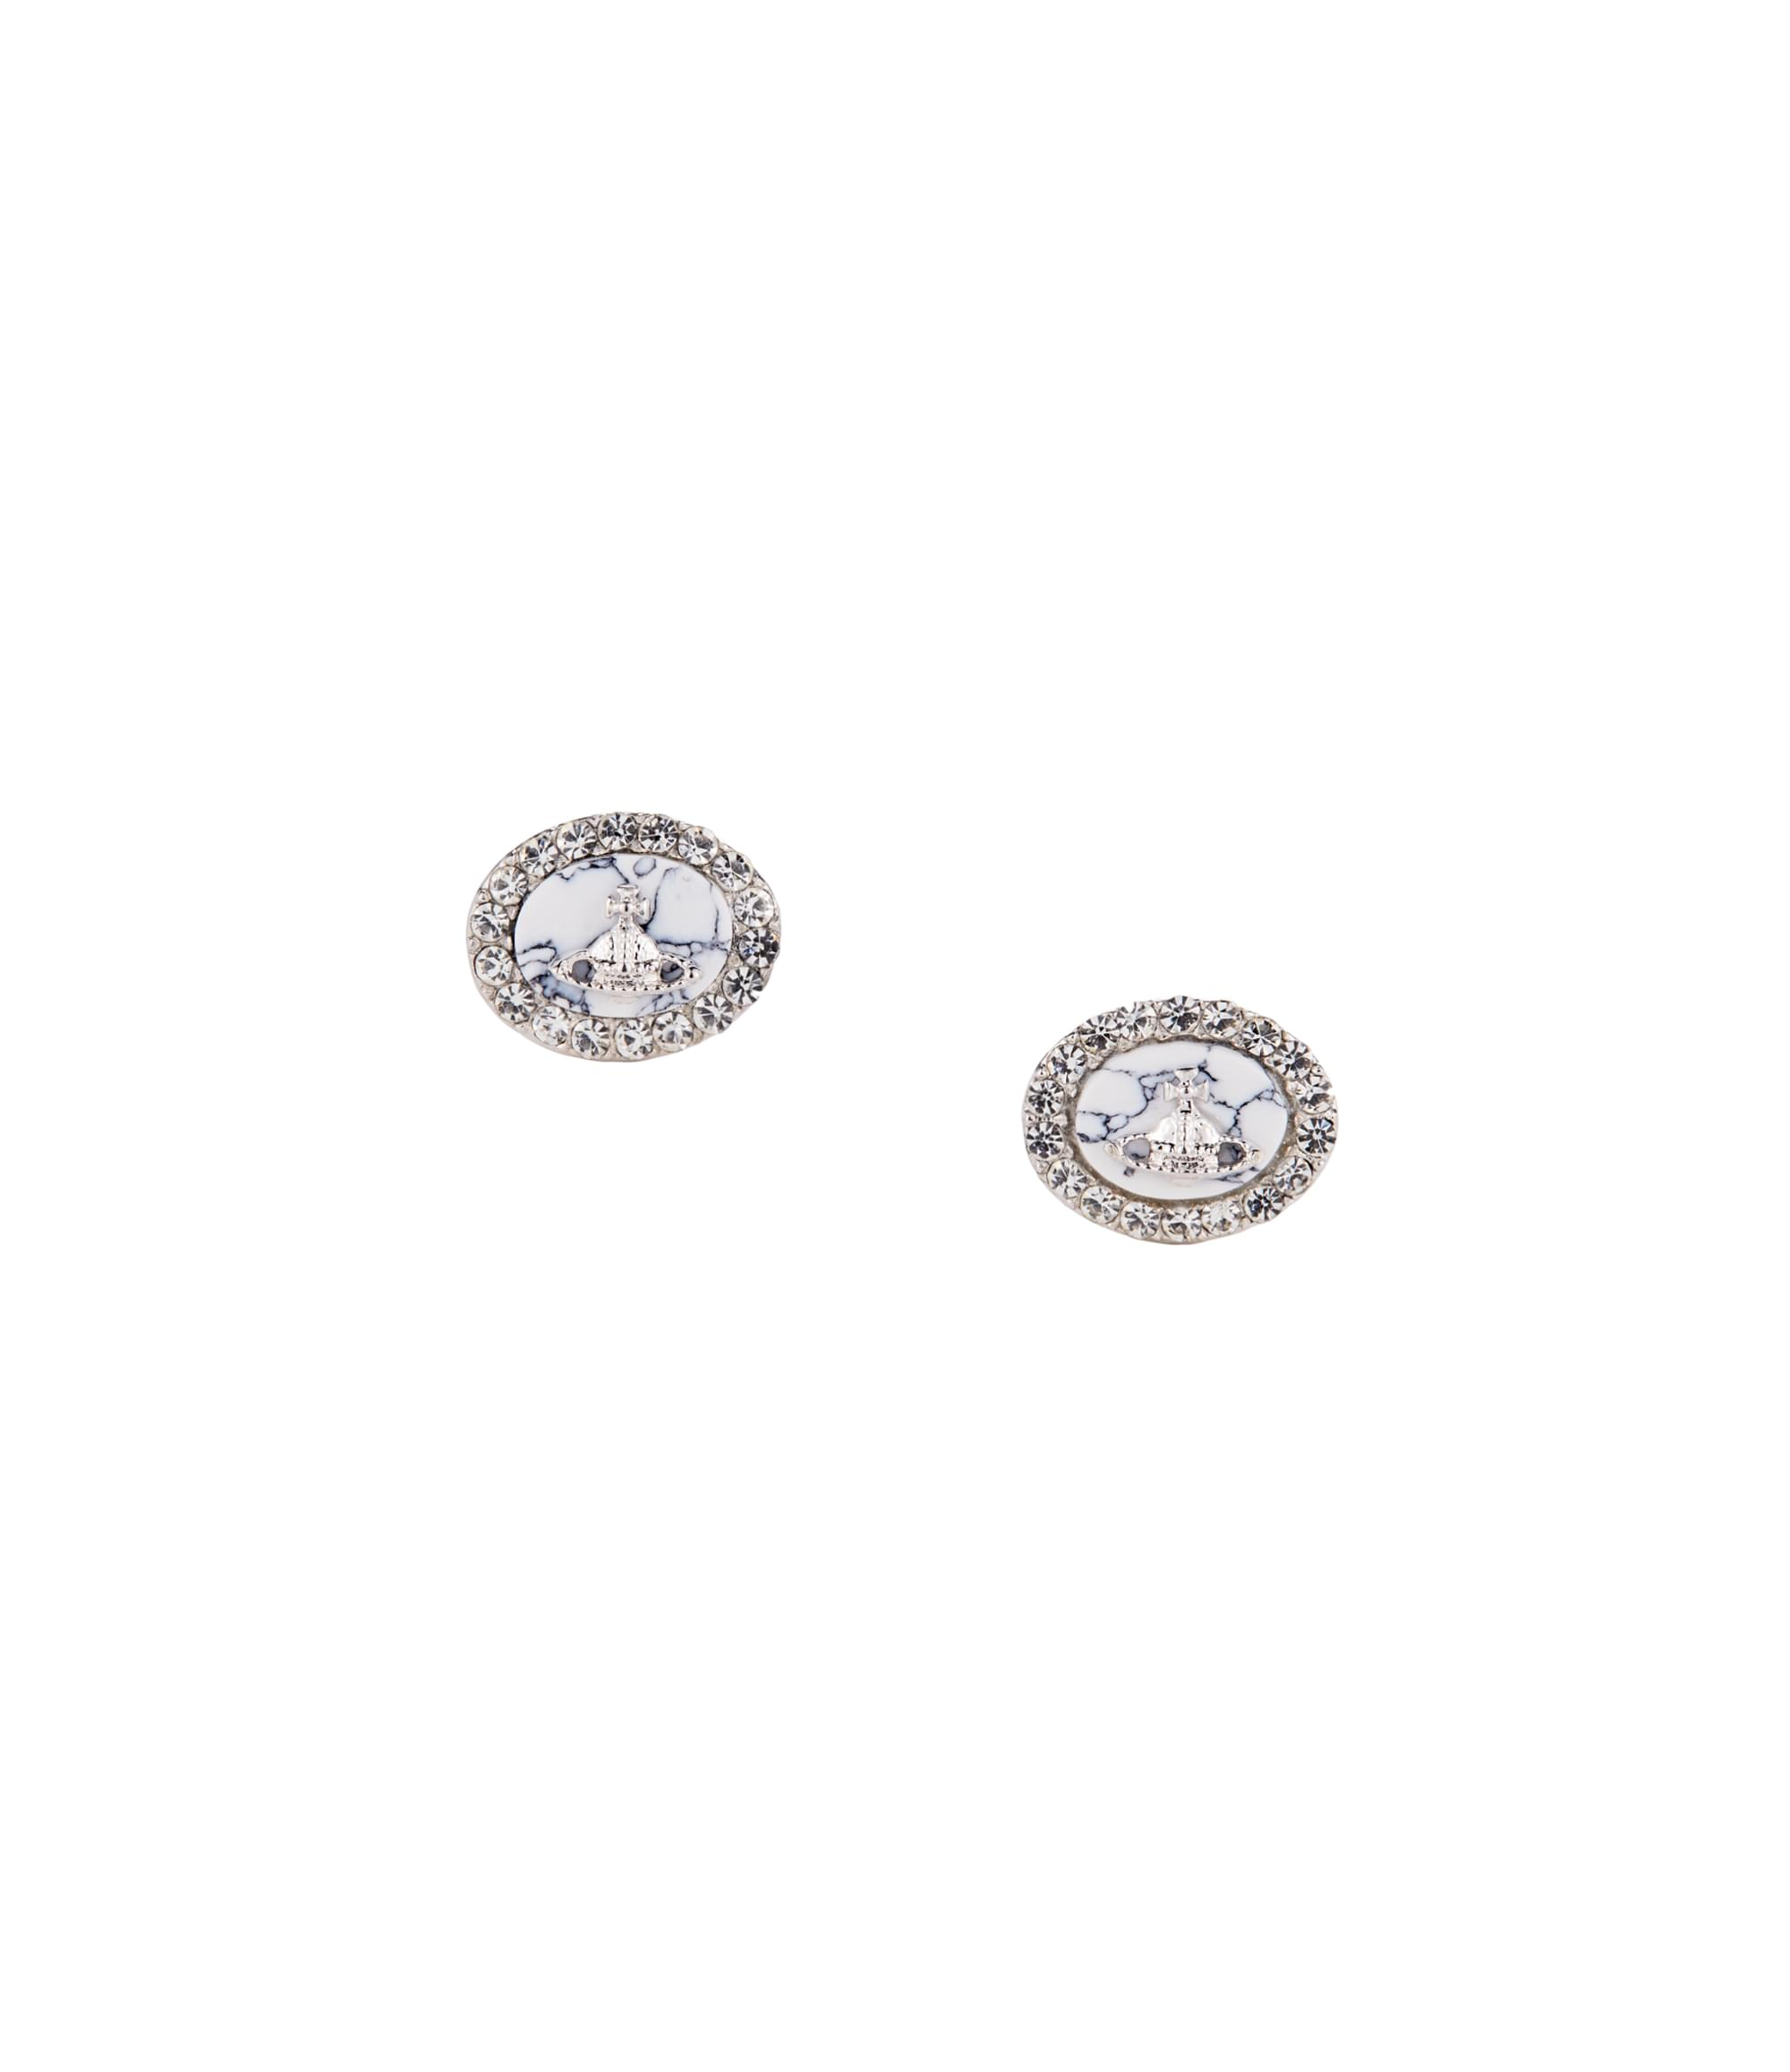 Vivienne Westwood Giselle Earrings Howlite